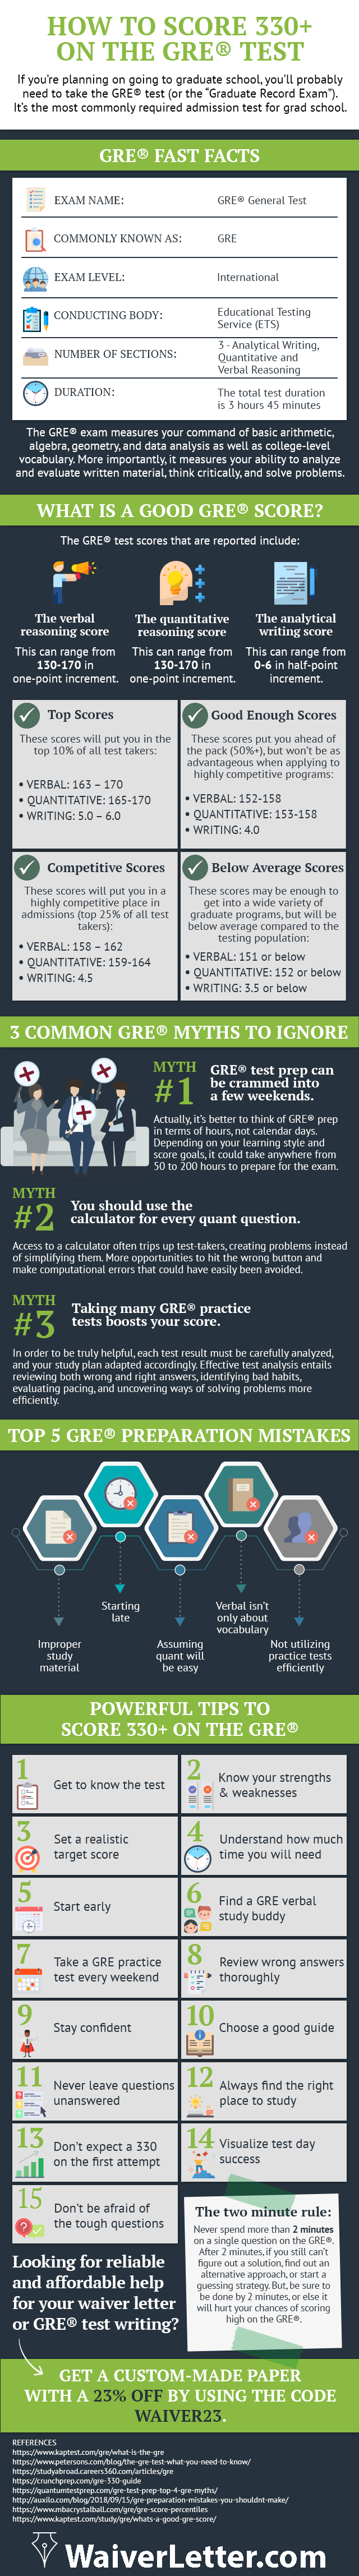 What to Write in a Waiver Letter GRE Public Health #infographic